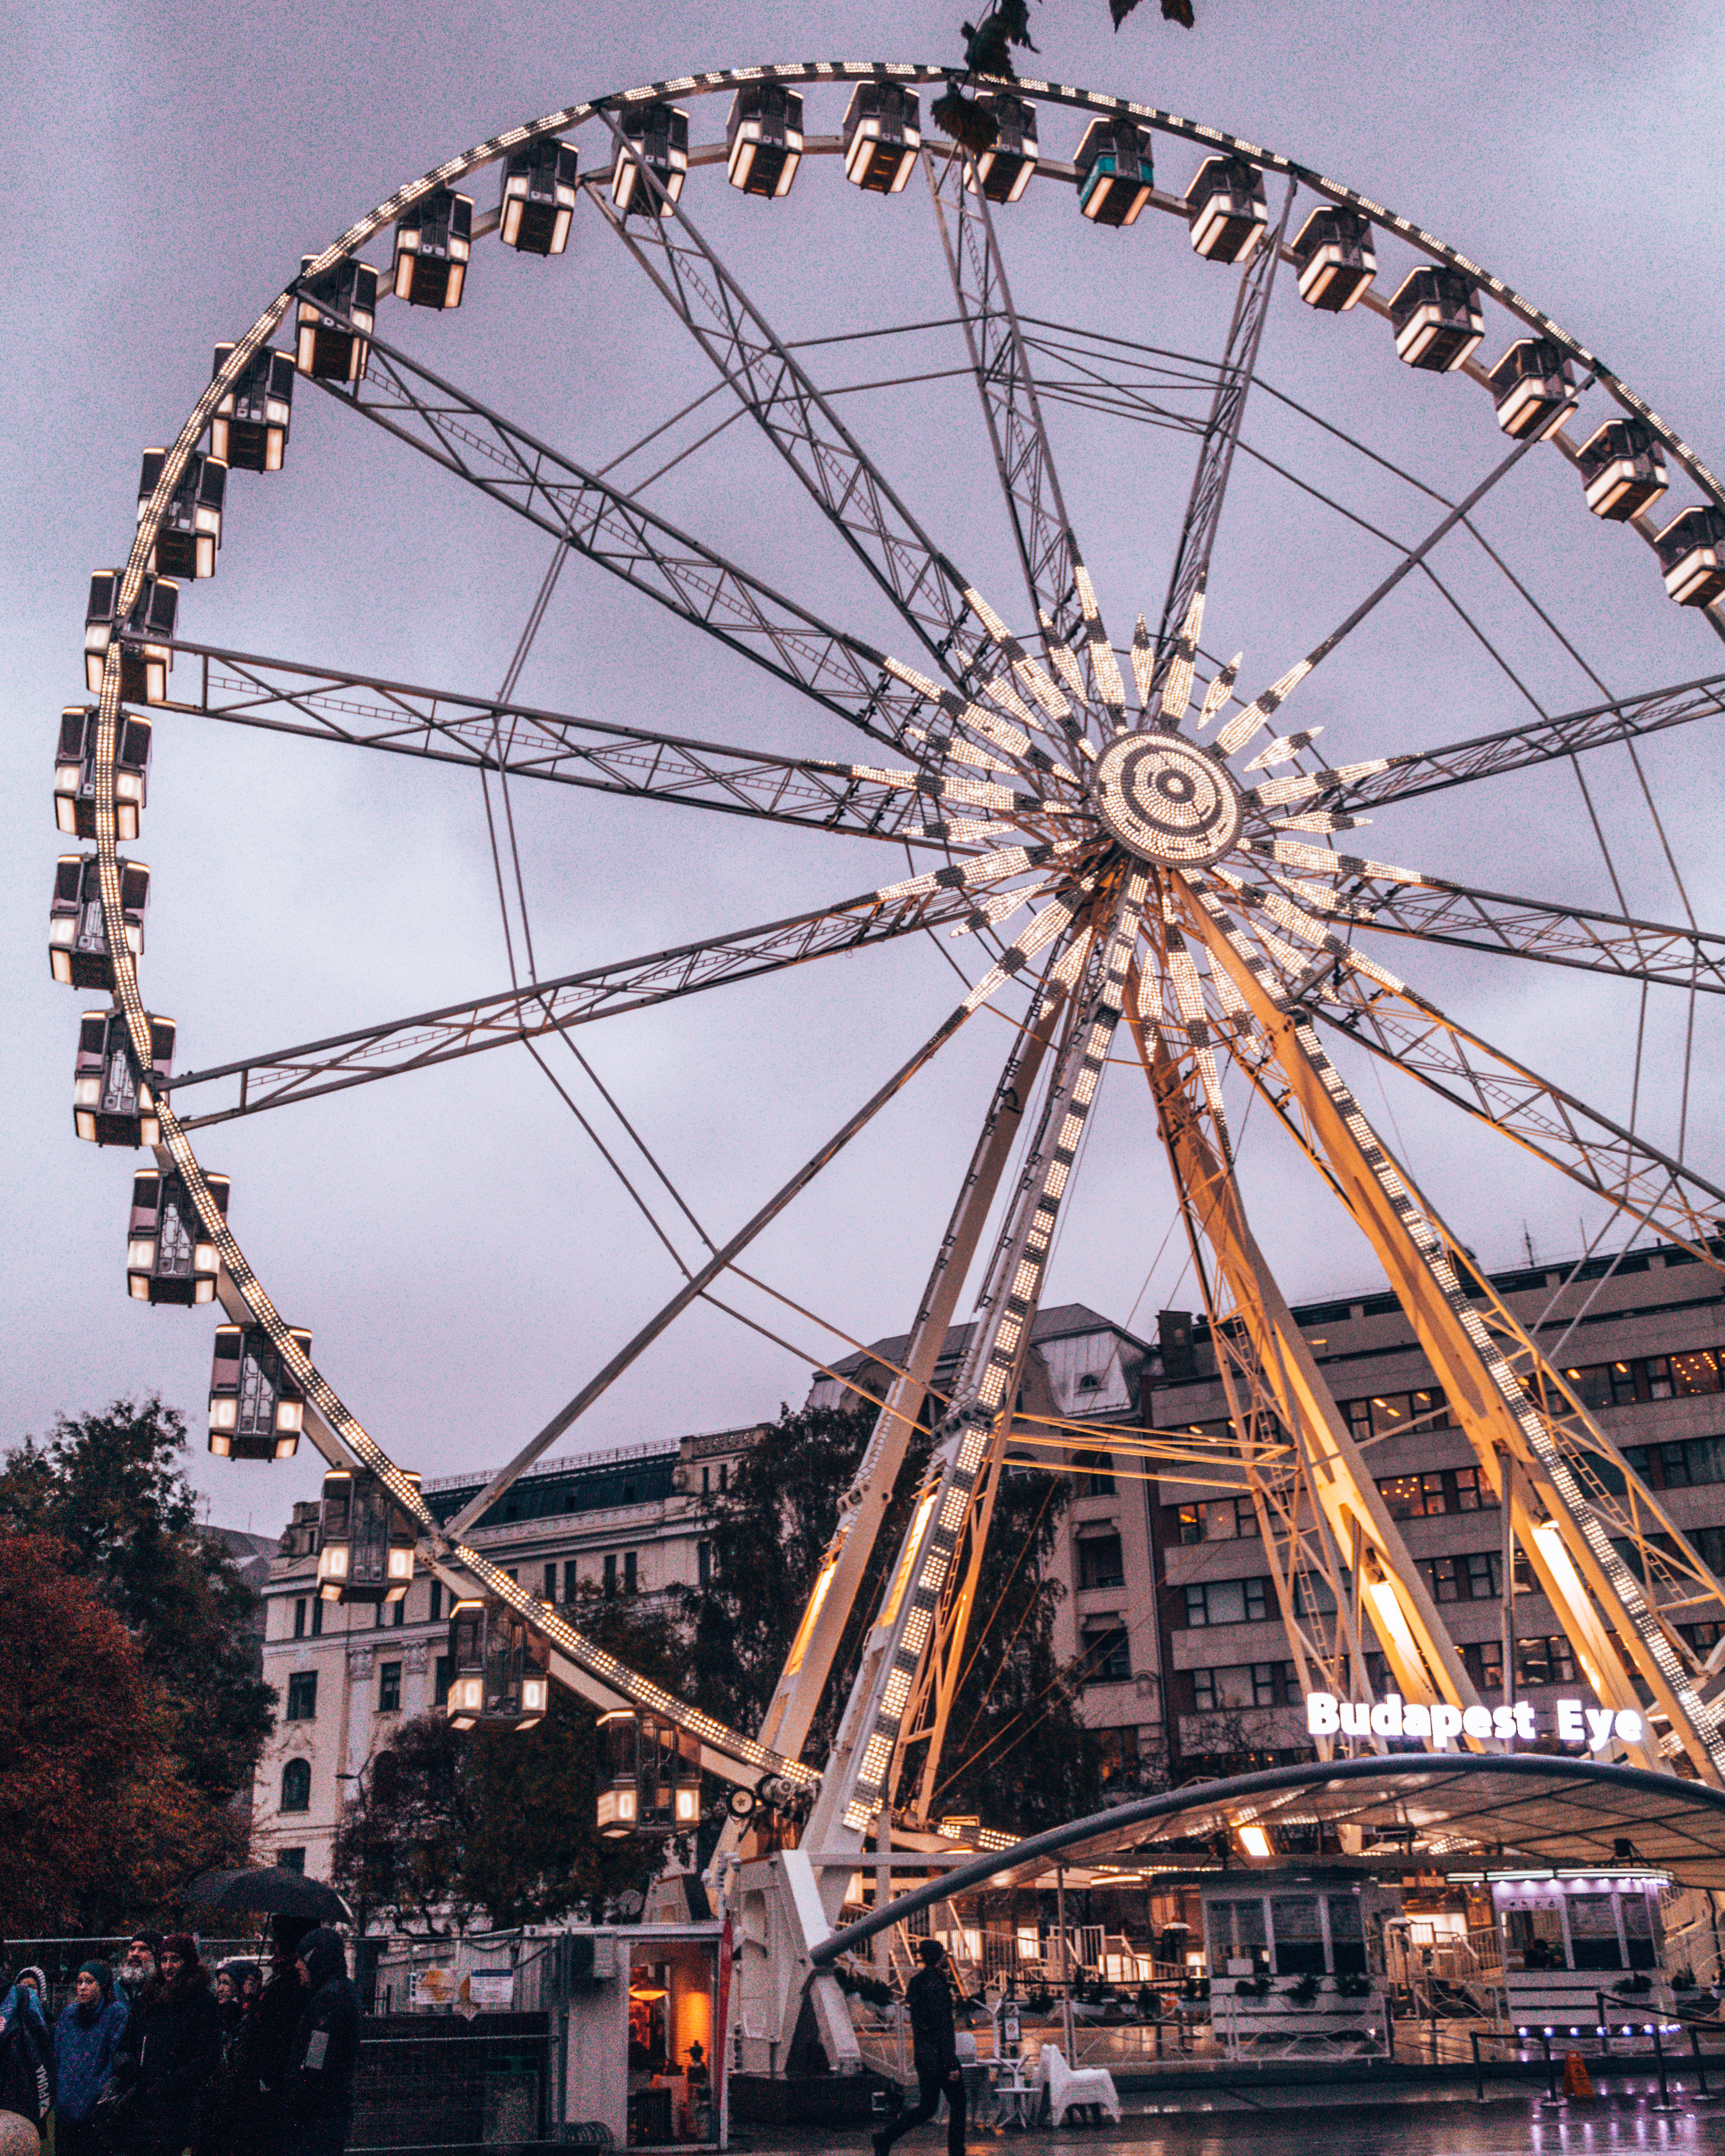 Come ride the Budapest Eye Ferris Wheel in Budapest, Hungary